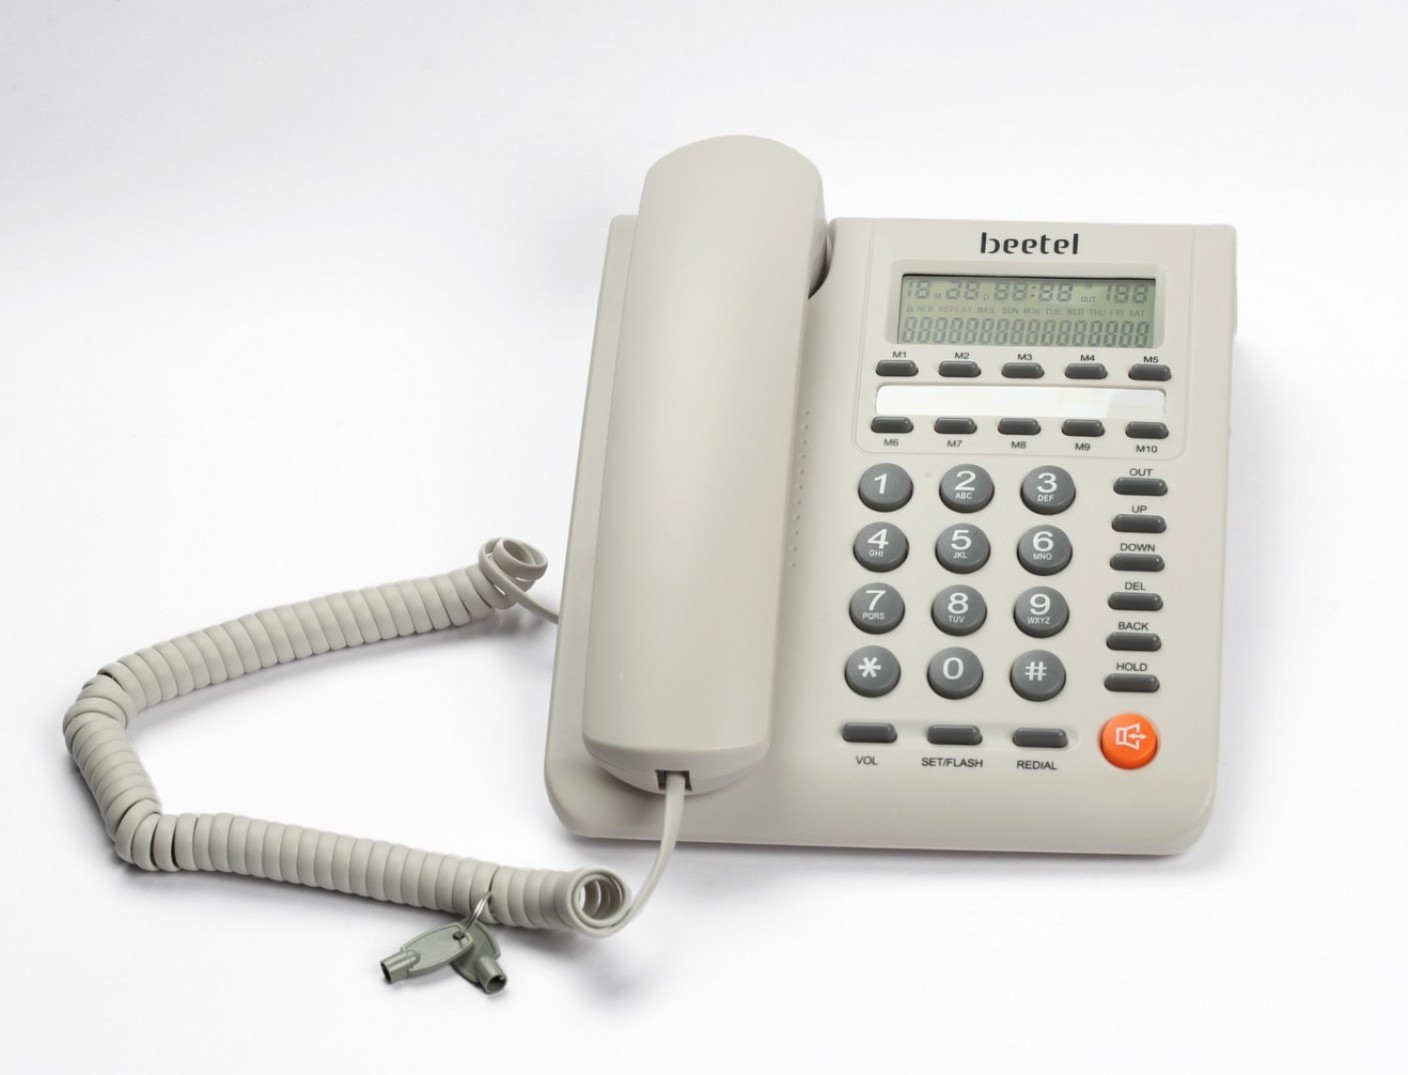 how to check last incoming call on landline